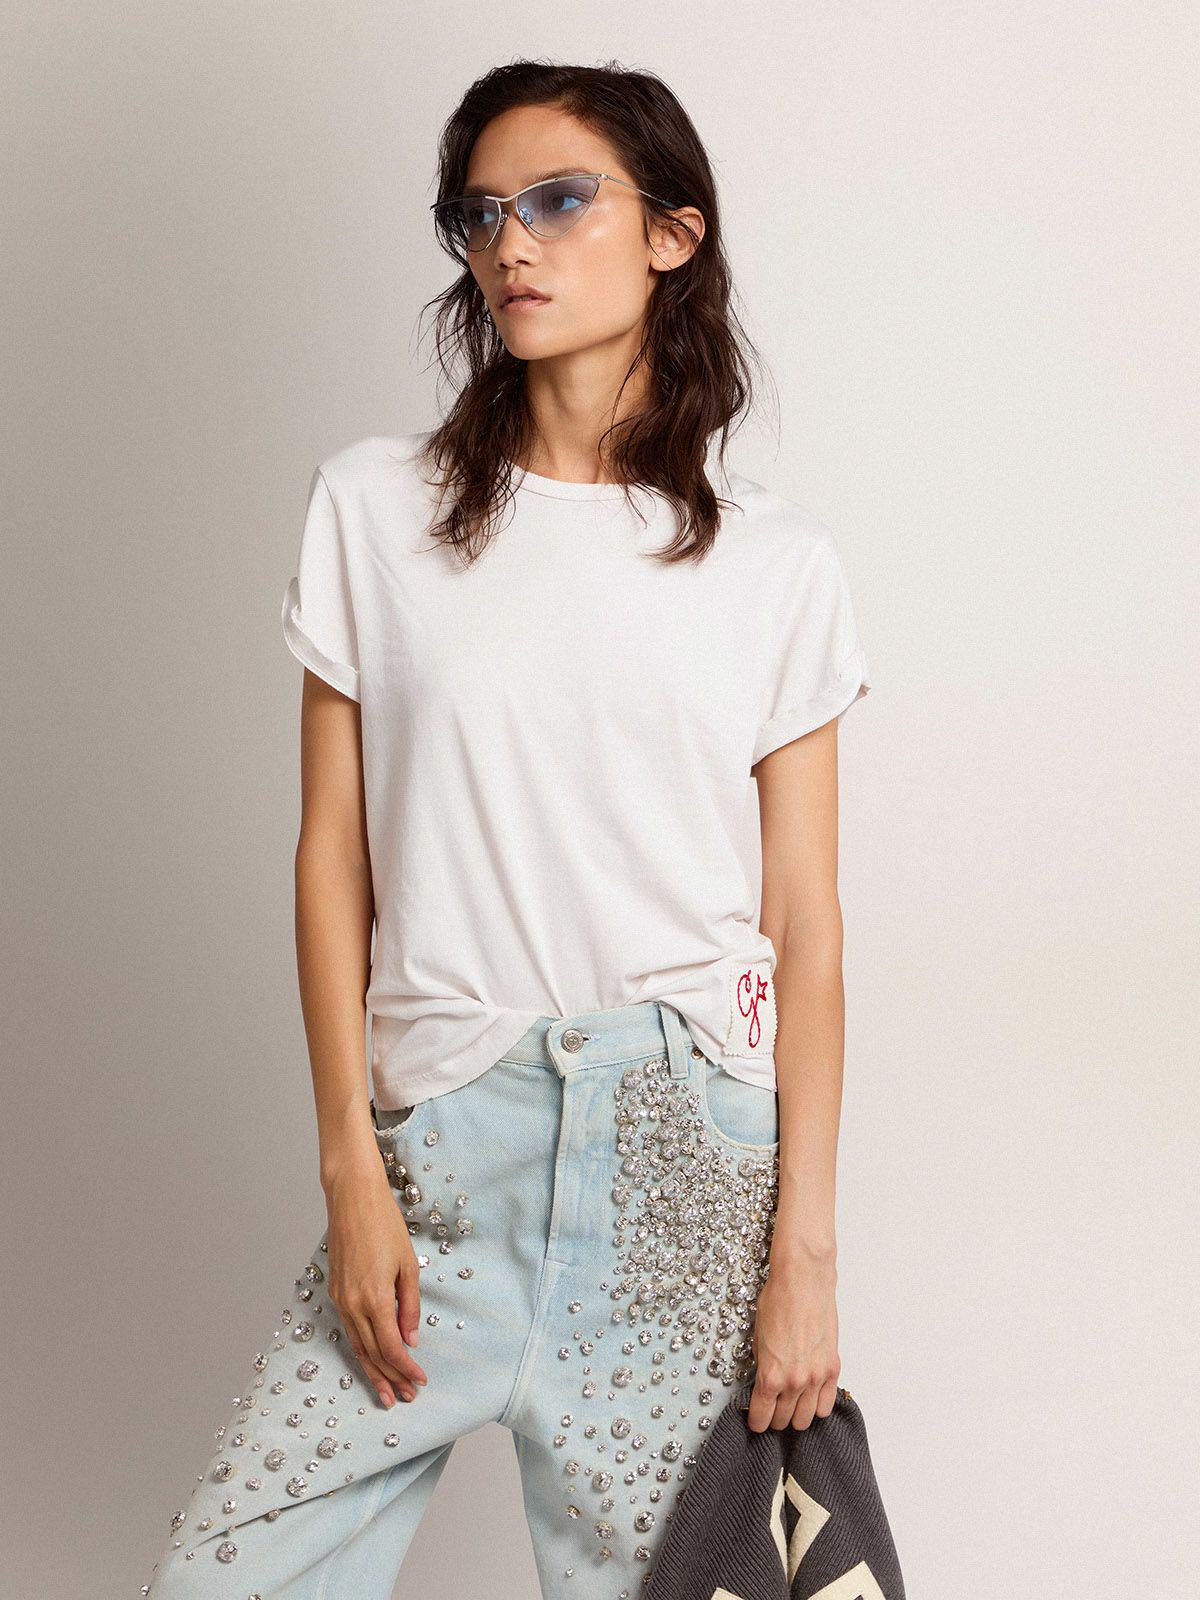 Golden Collection T-shirt in white with a distressed treatment